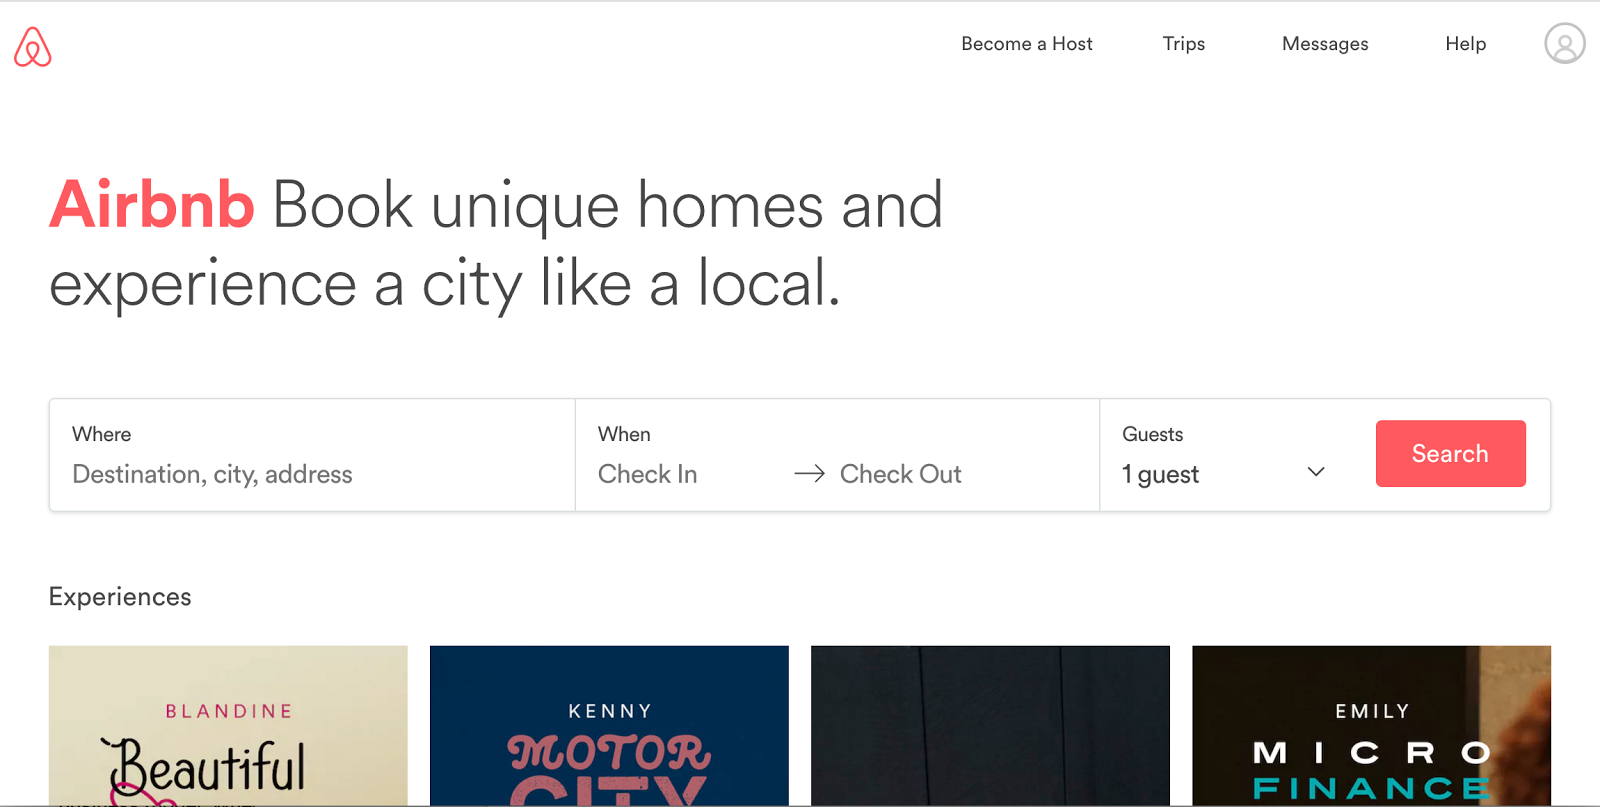 Airbnb high-converting landing page